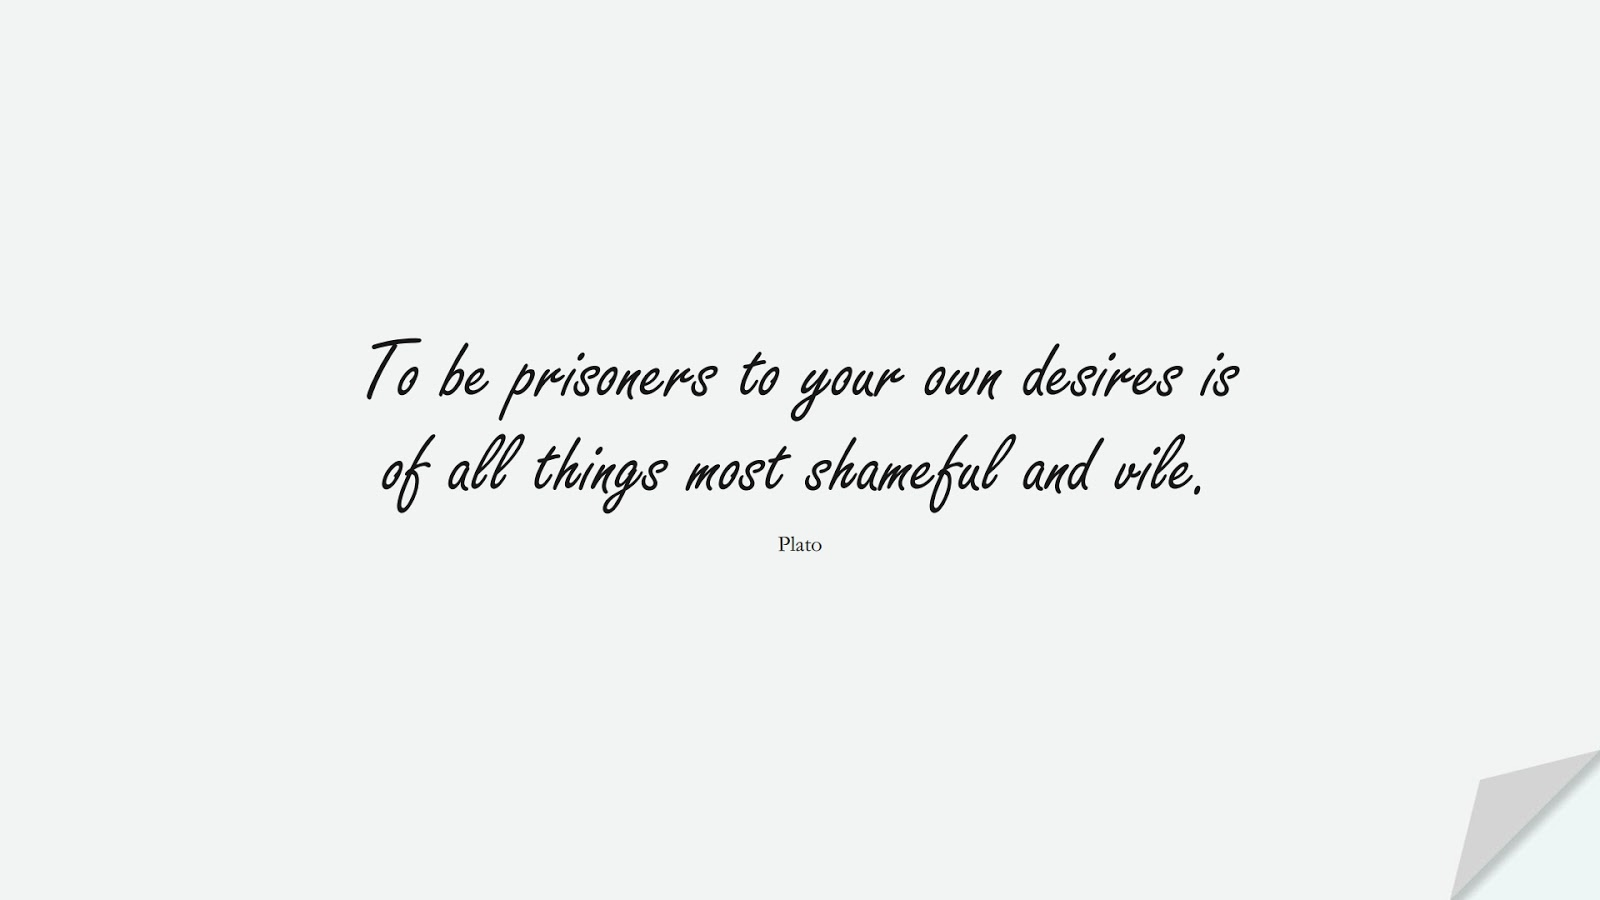 To be prisoners to your own desires is of all things most shameful and vile. (Plato);  #AnxietyQuotes